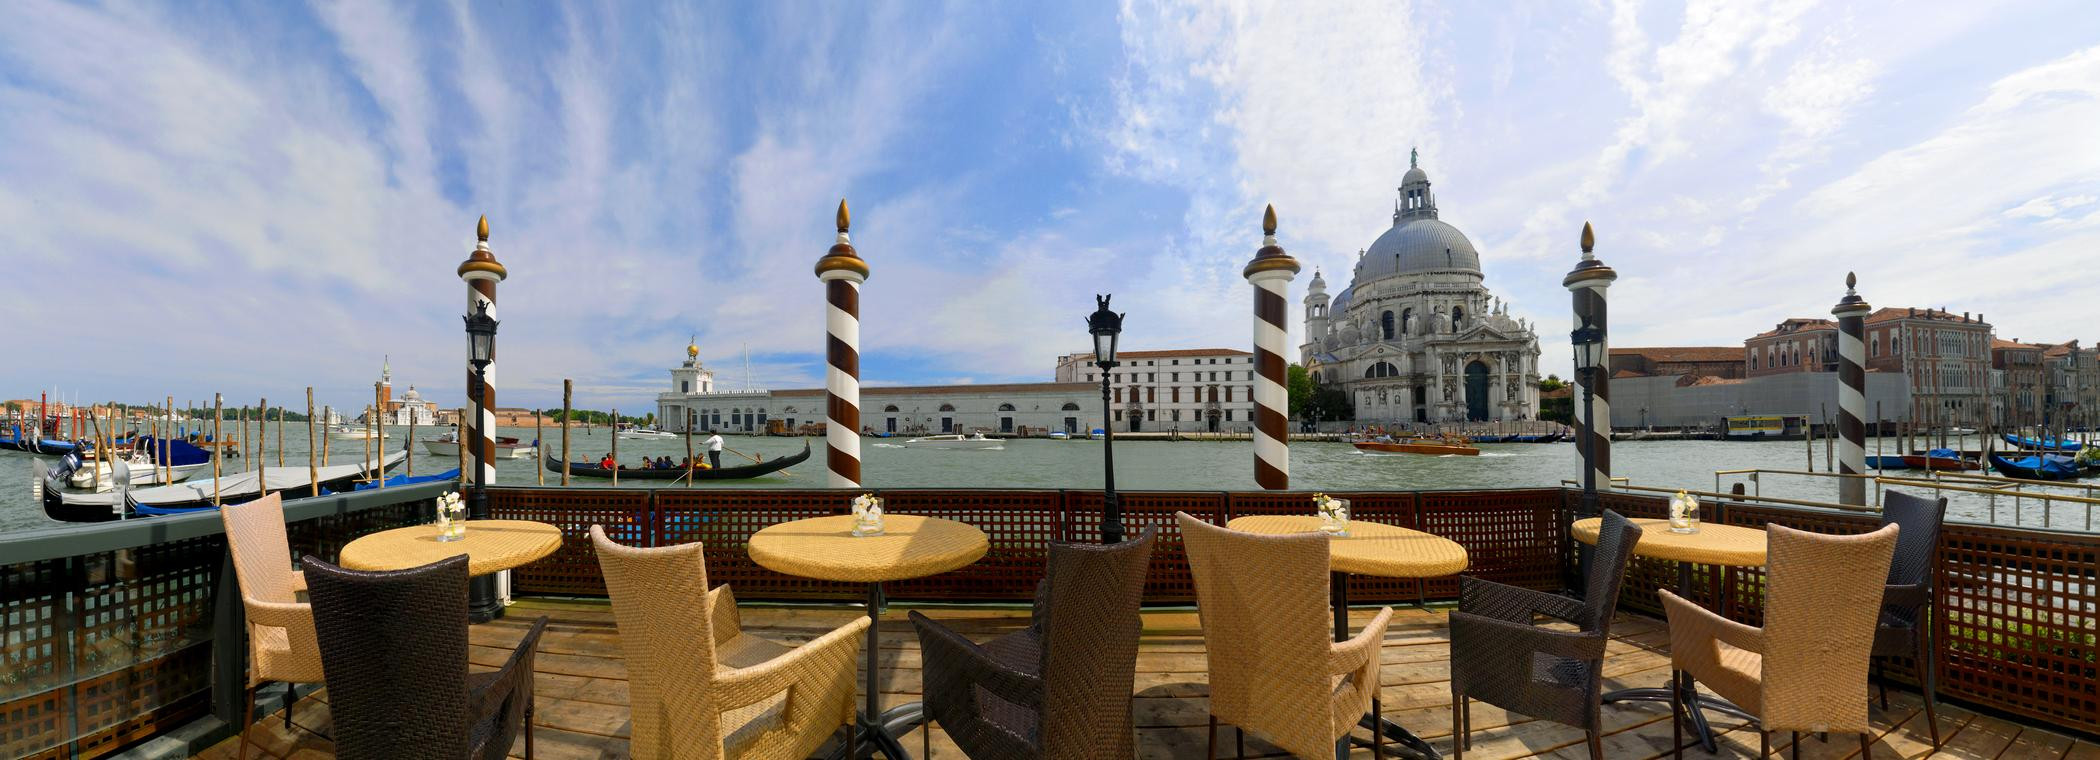 Top Hotels in Italy   Marriott Italy Hotels